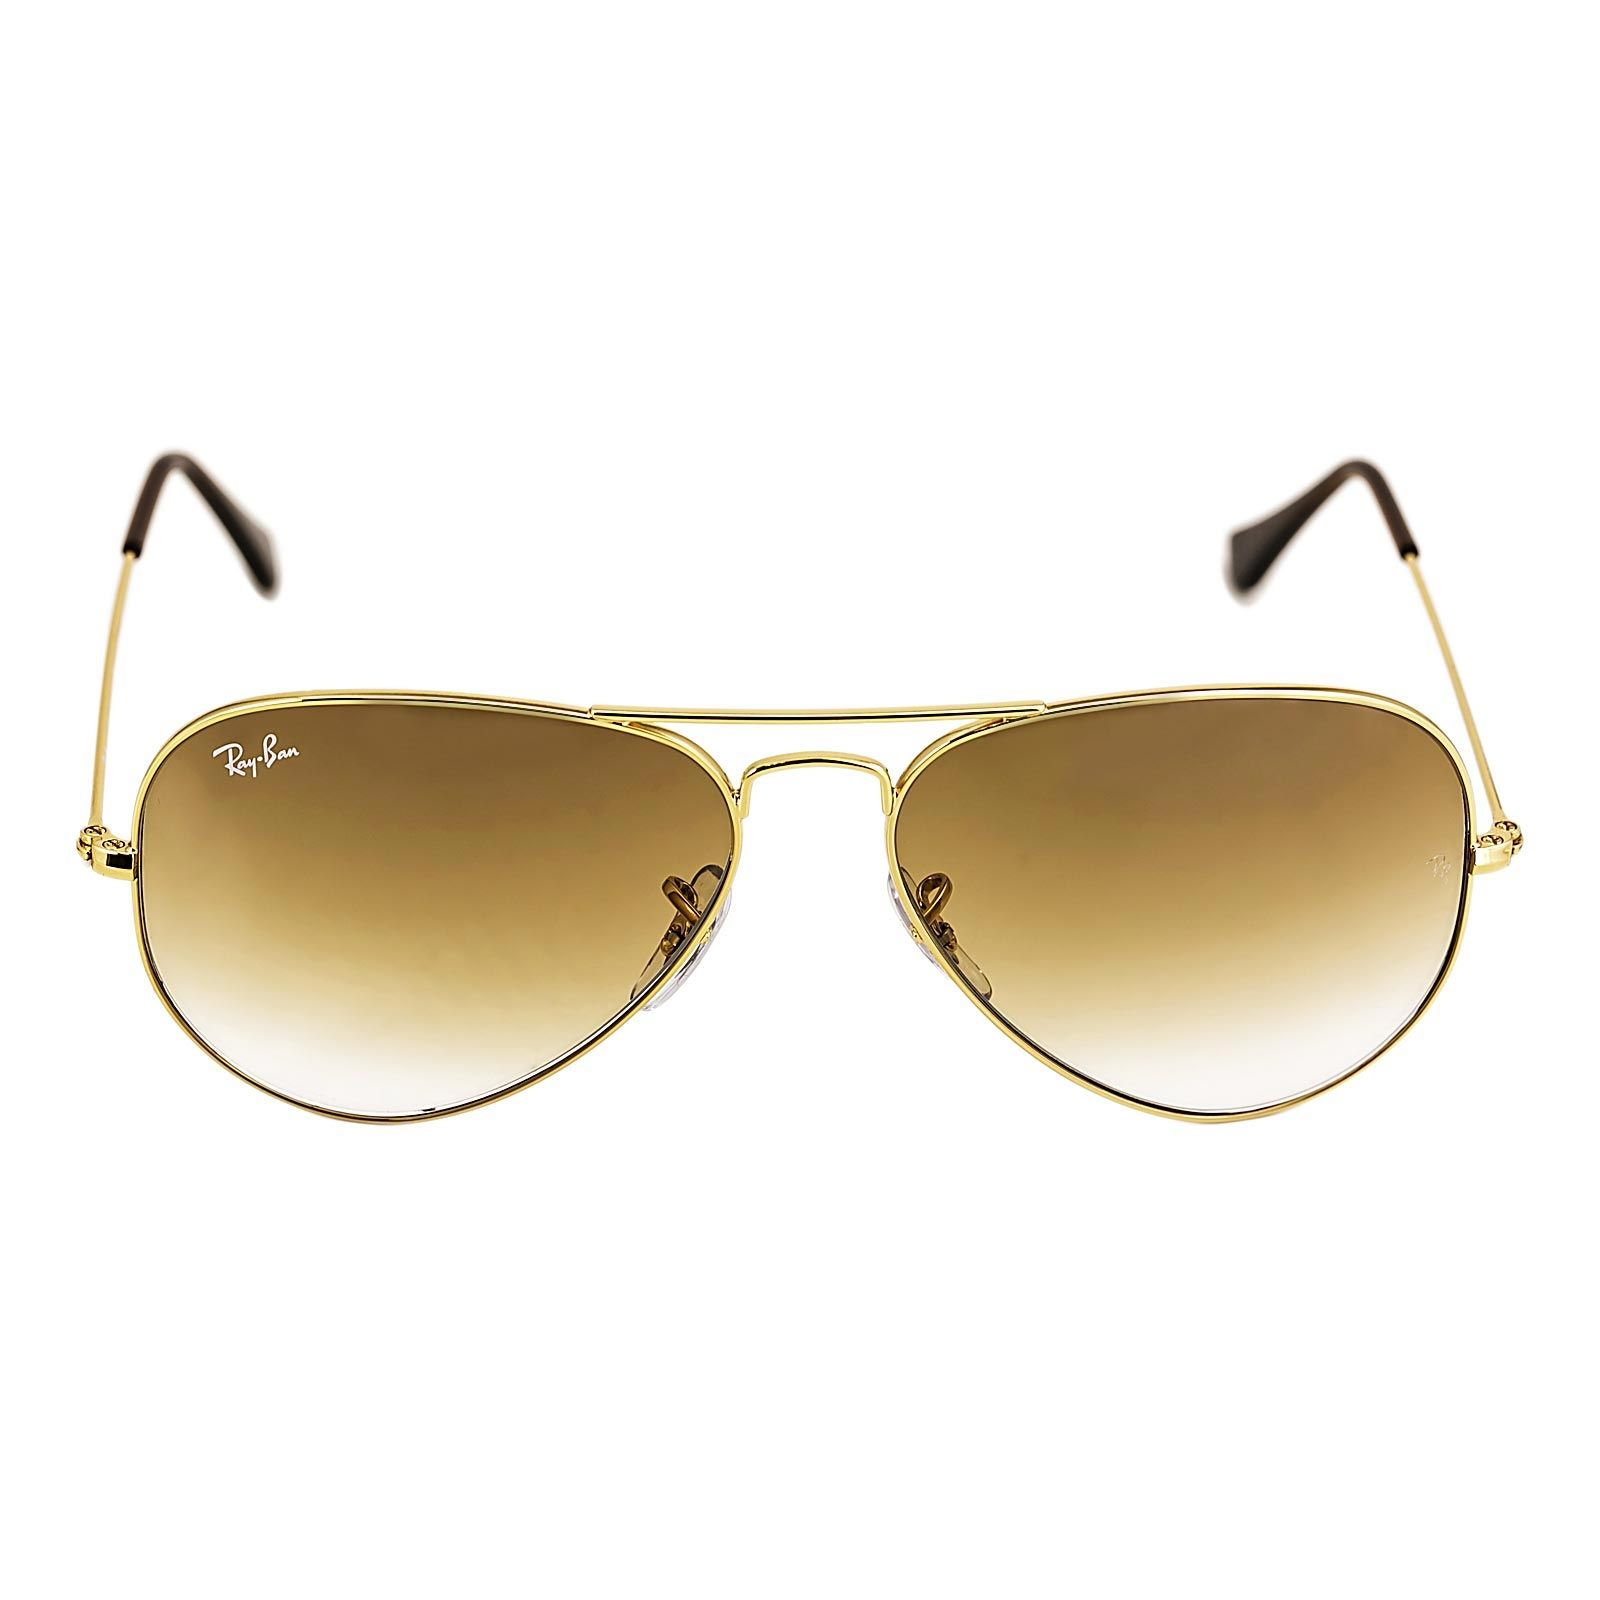 ray ban sunglasses price in egypt